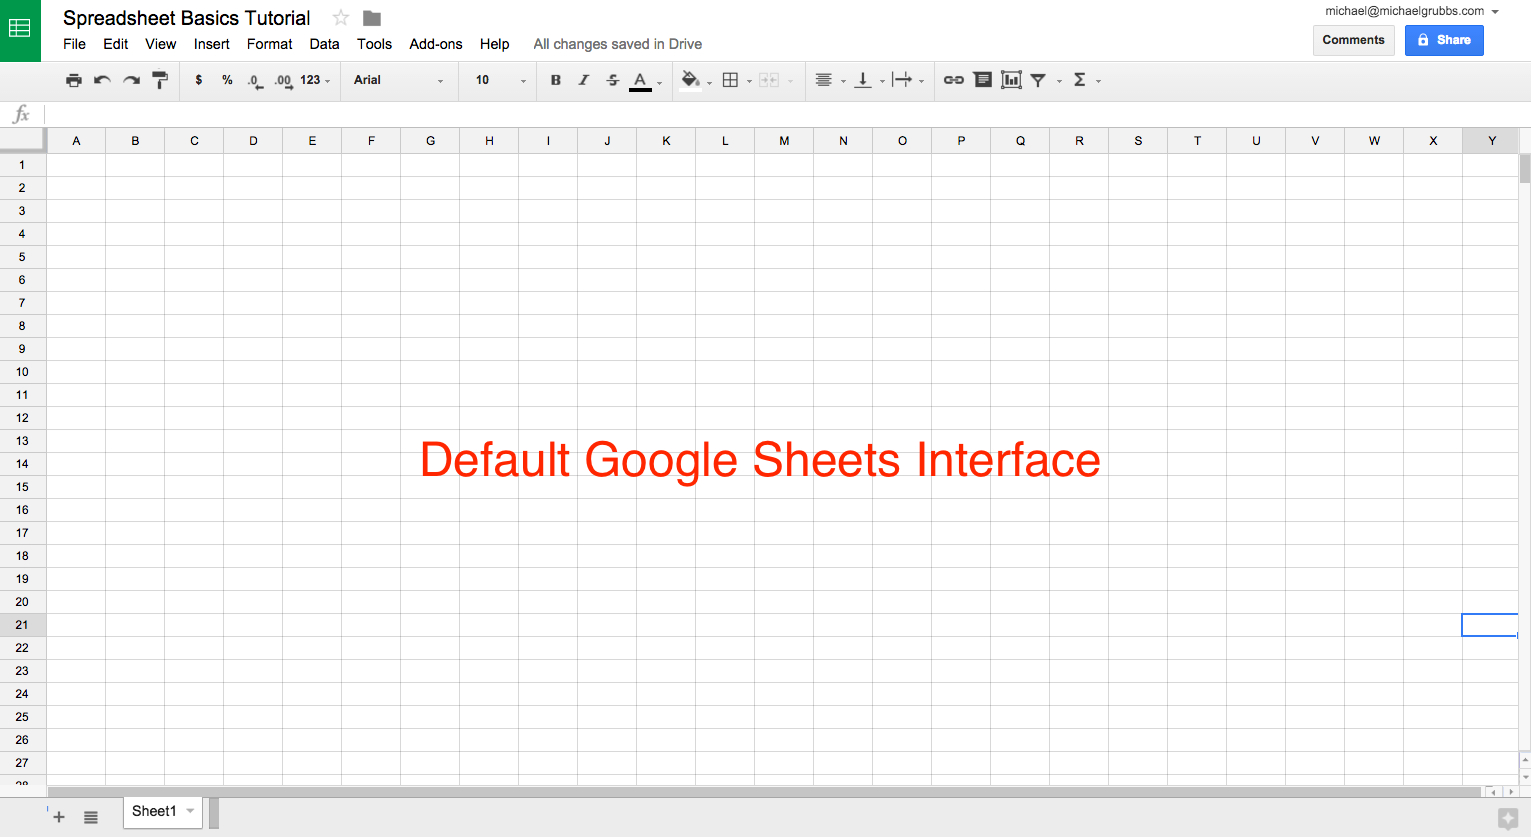 Free Easy Spreadsheet For Google Sheets 101: The Beginner's Guide To Online Spreadsheets  The